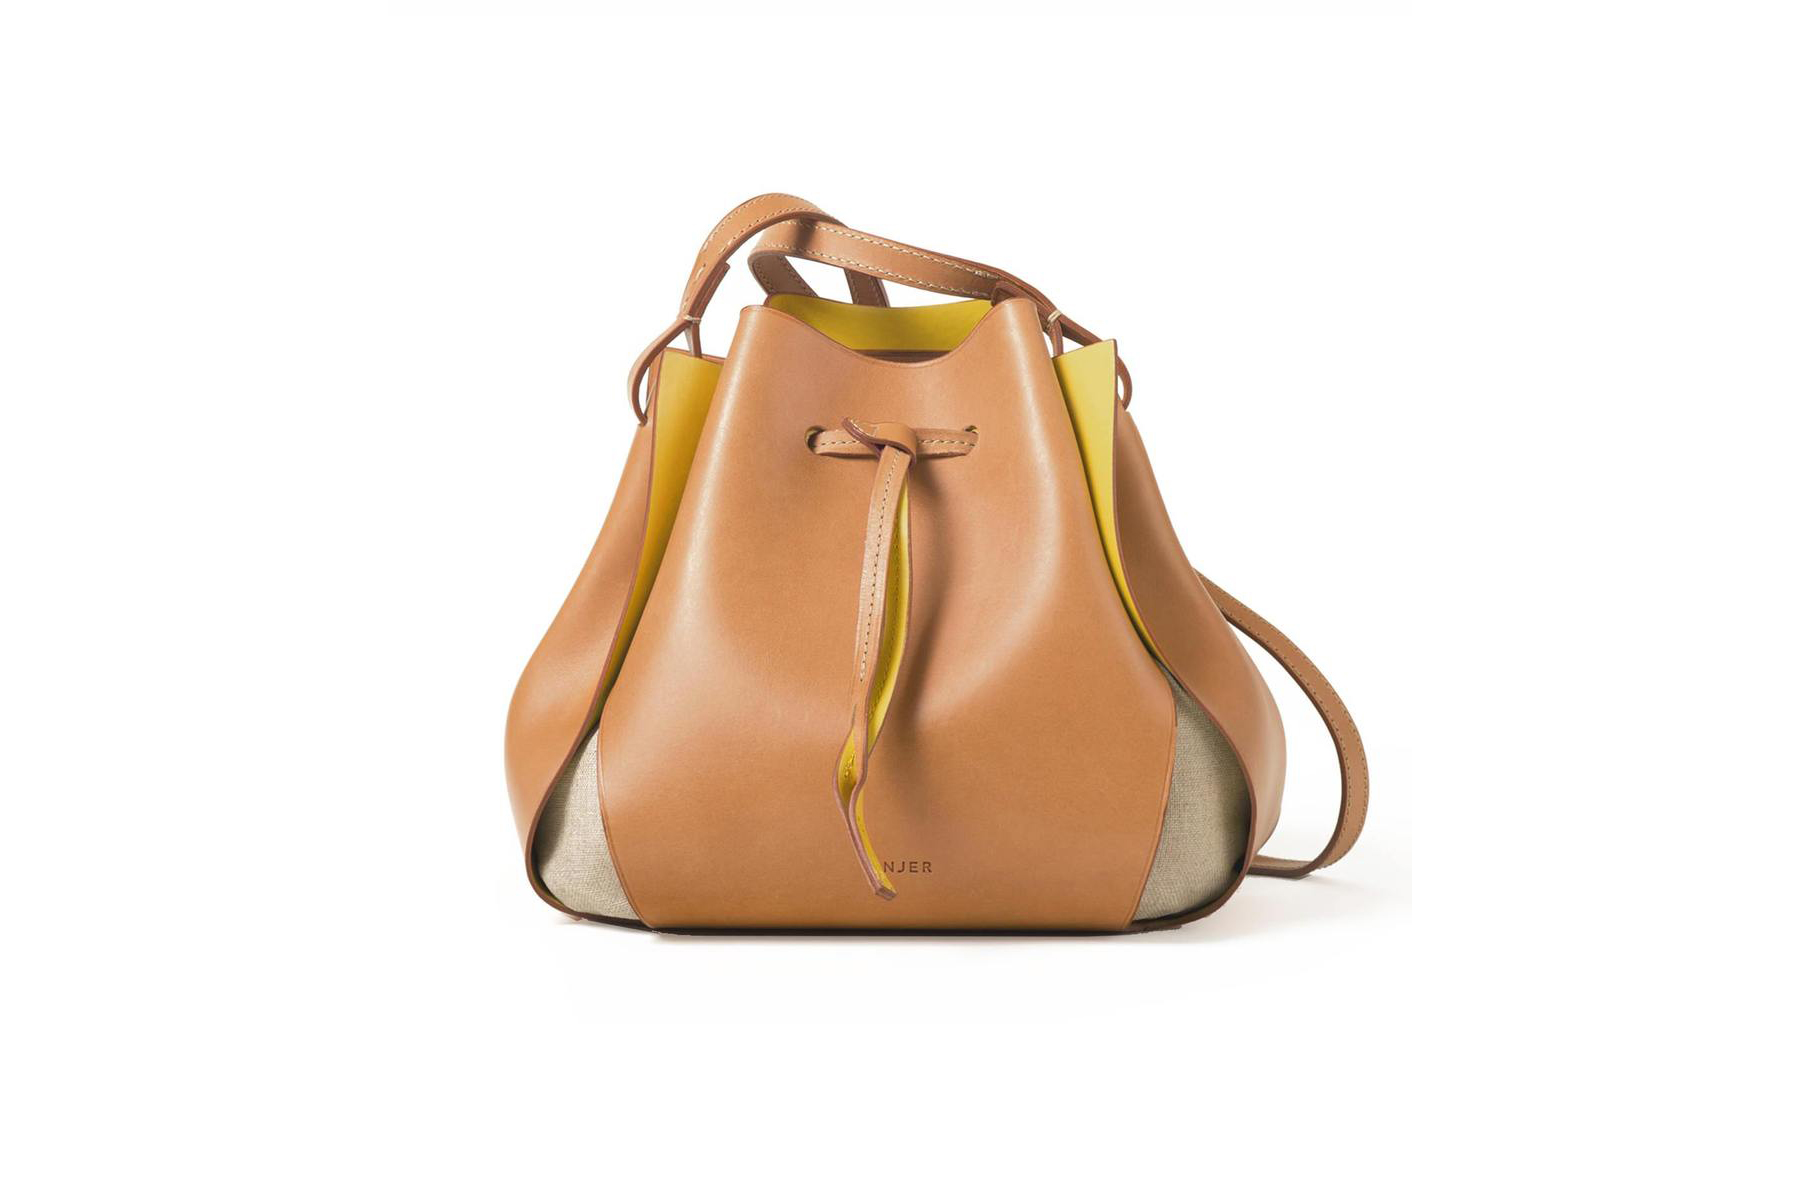 The Linjer Tulip Bag